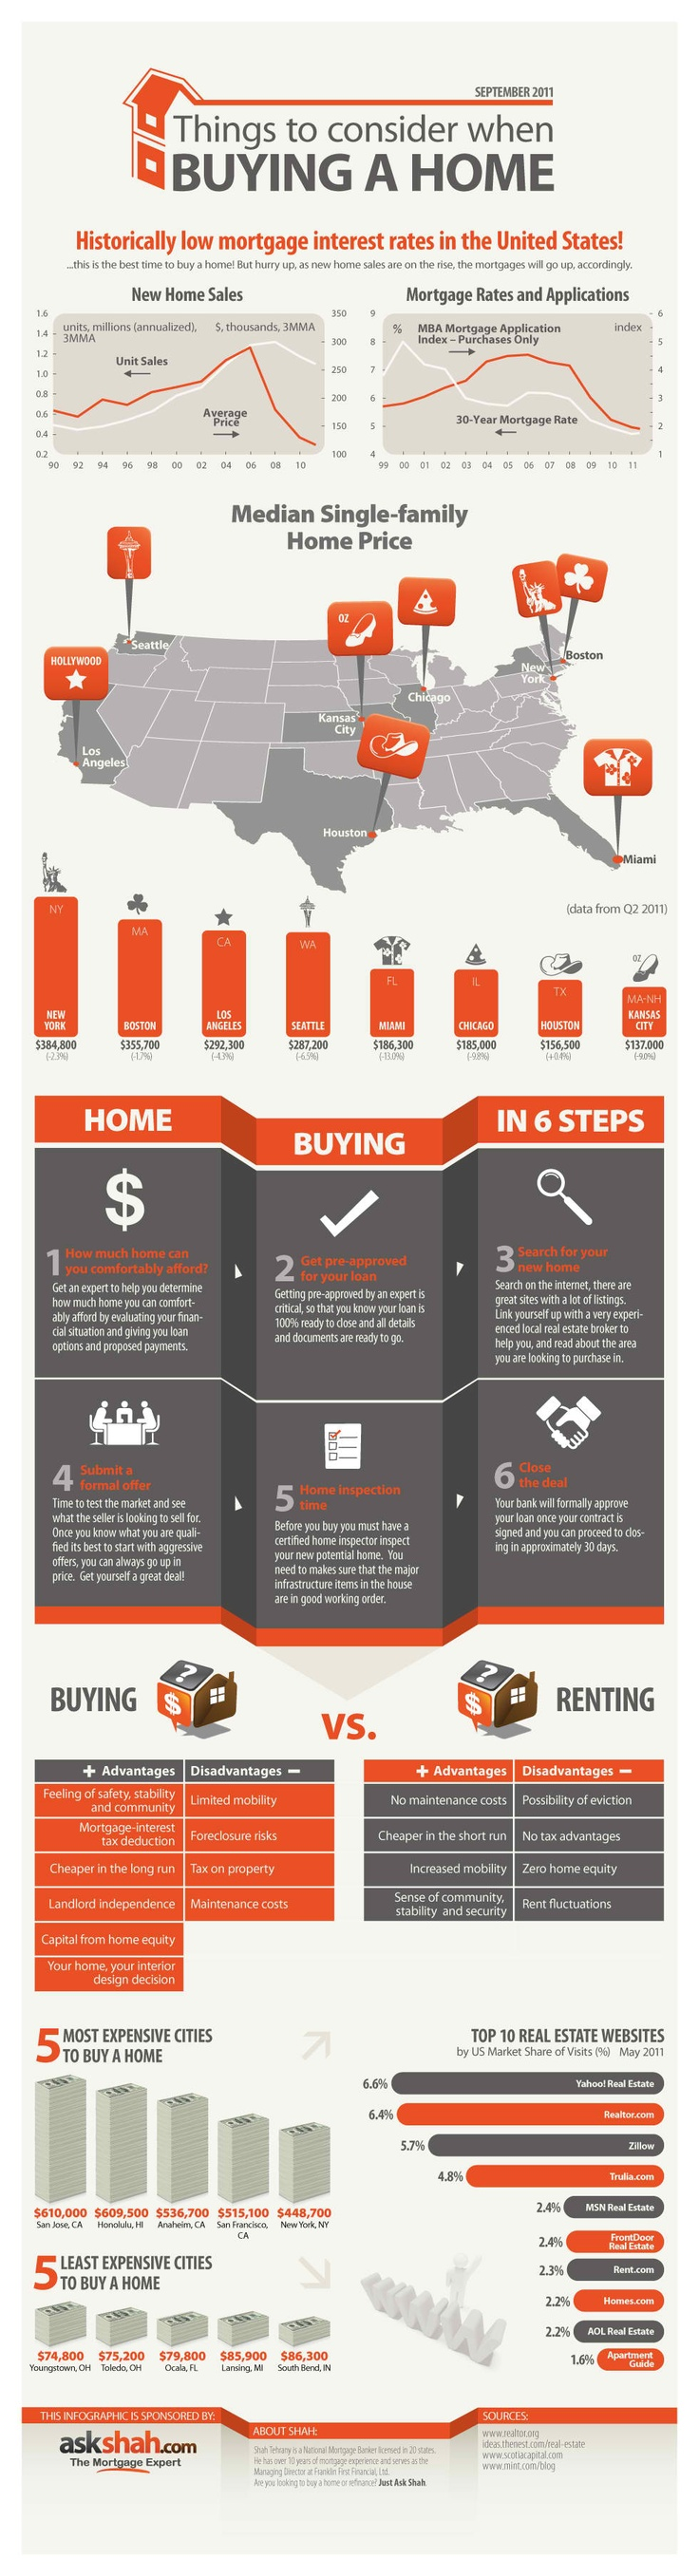 An Informative Graphic Regarding Many Aspects Of Buying A Home Including Current Mortgage Rates Median Prices Homes The Process And More